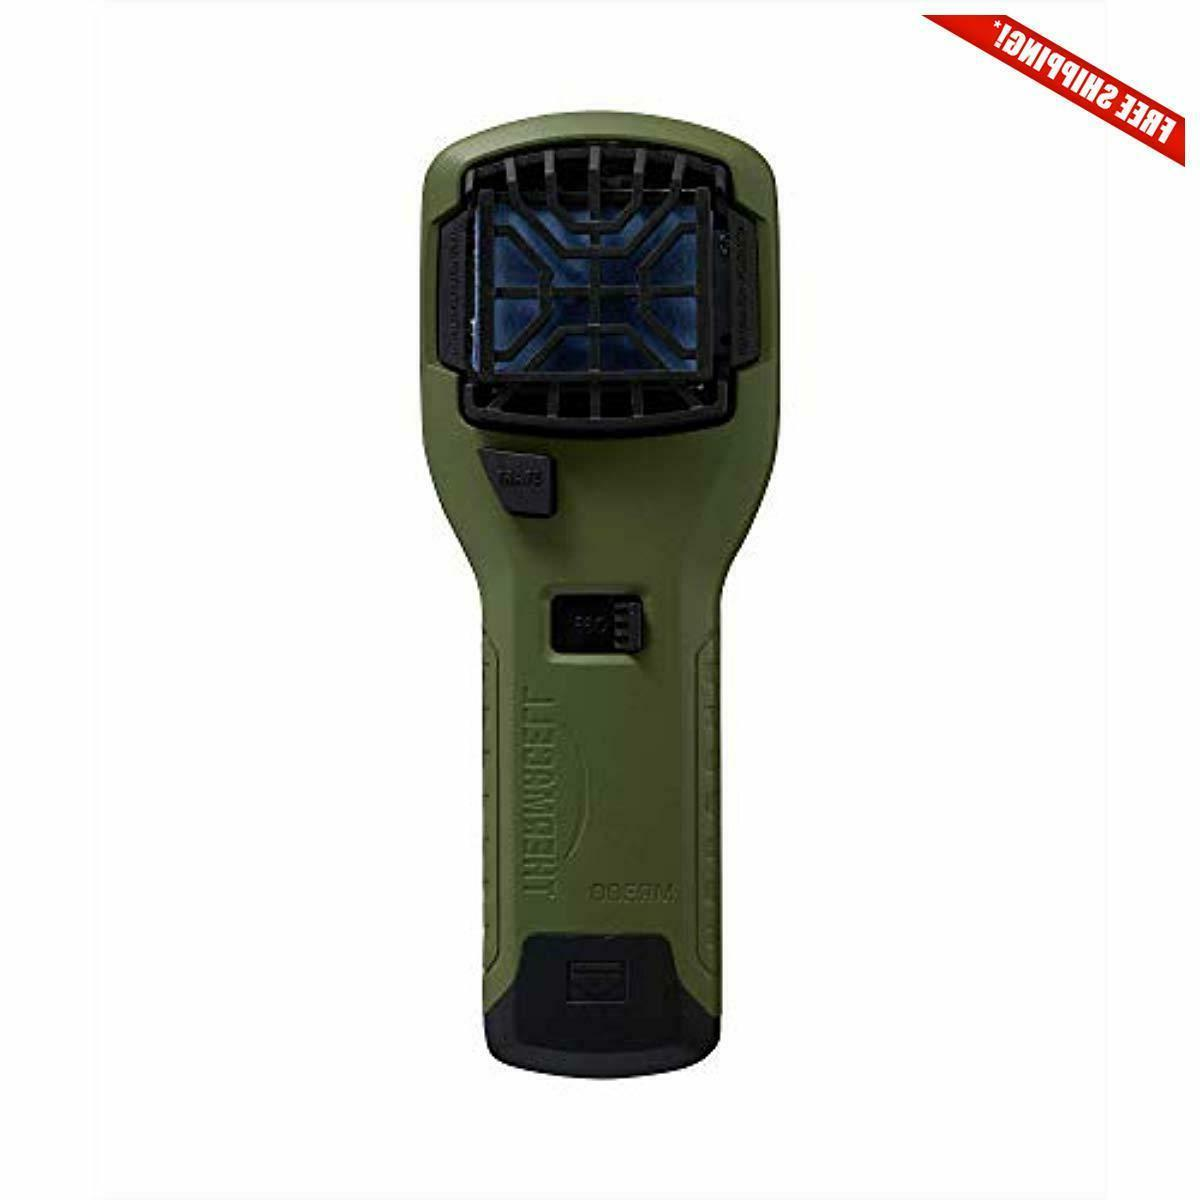 mr300 portable mosquito repeller olive green contains